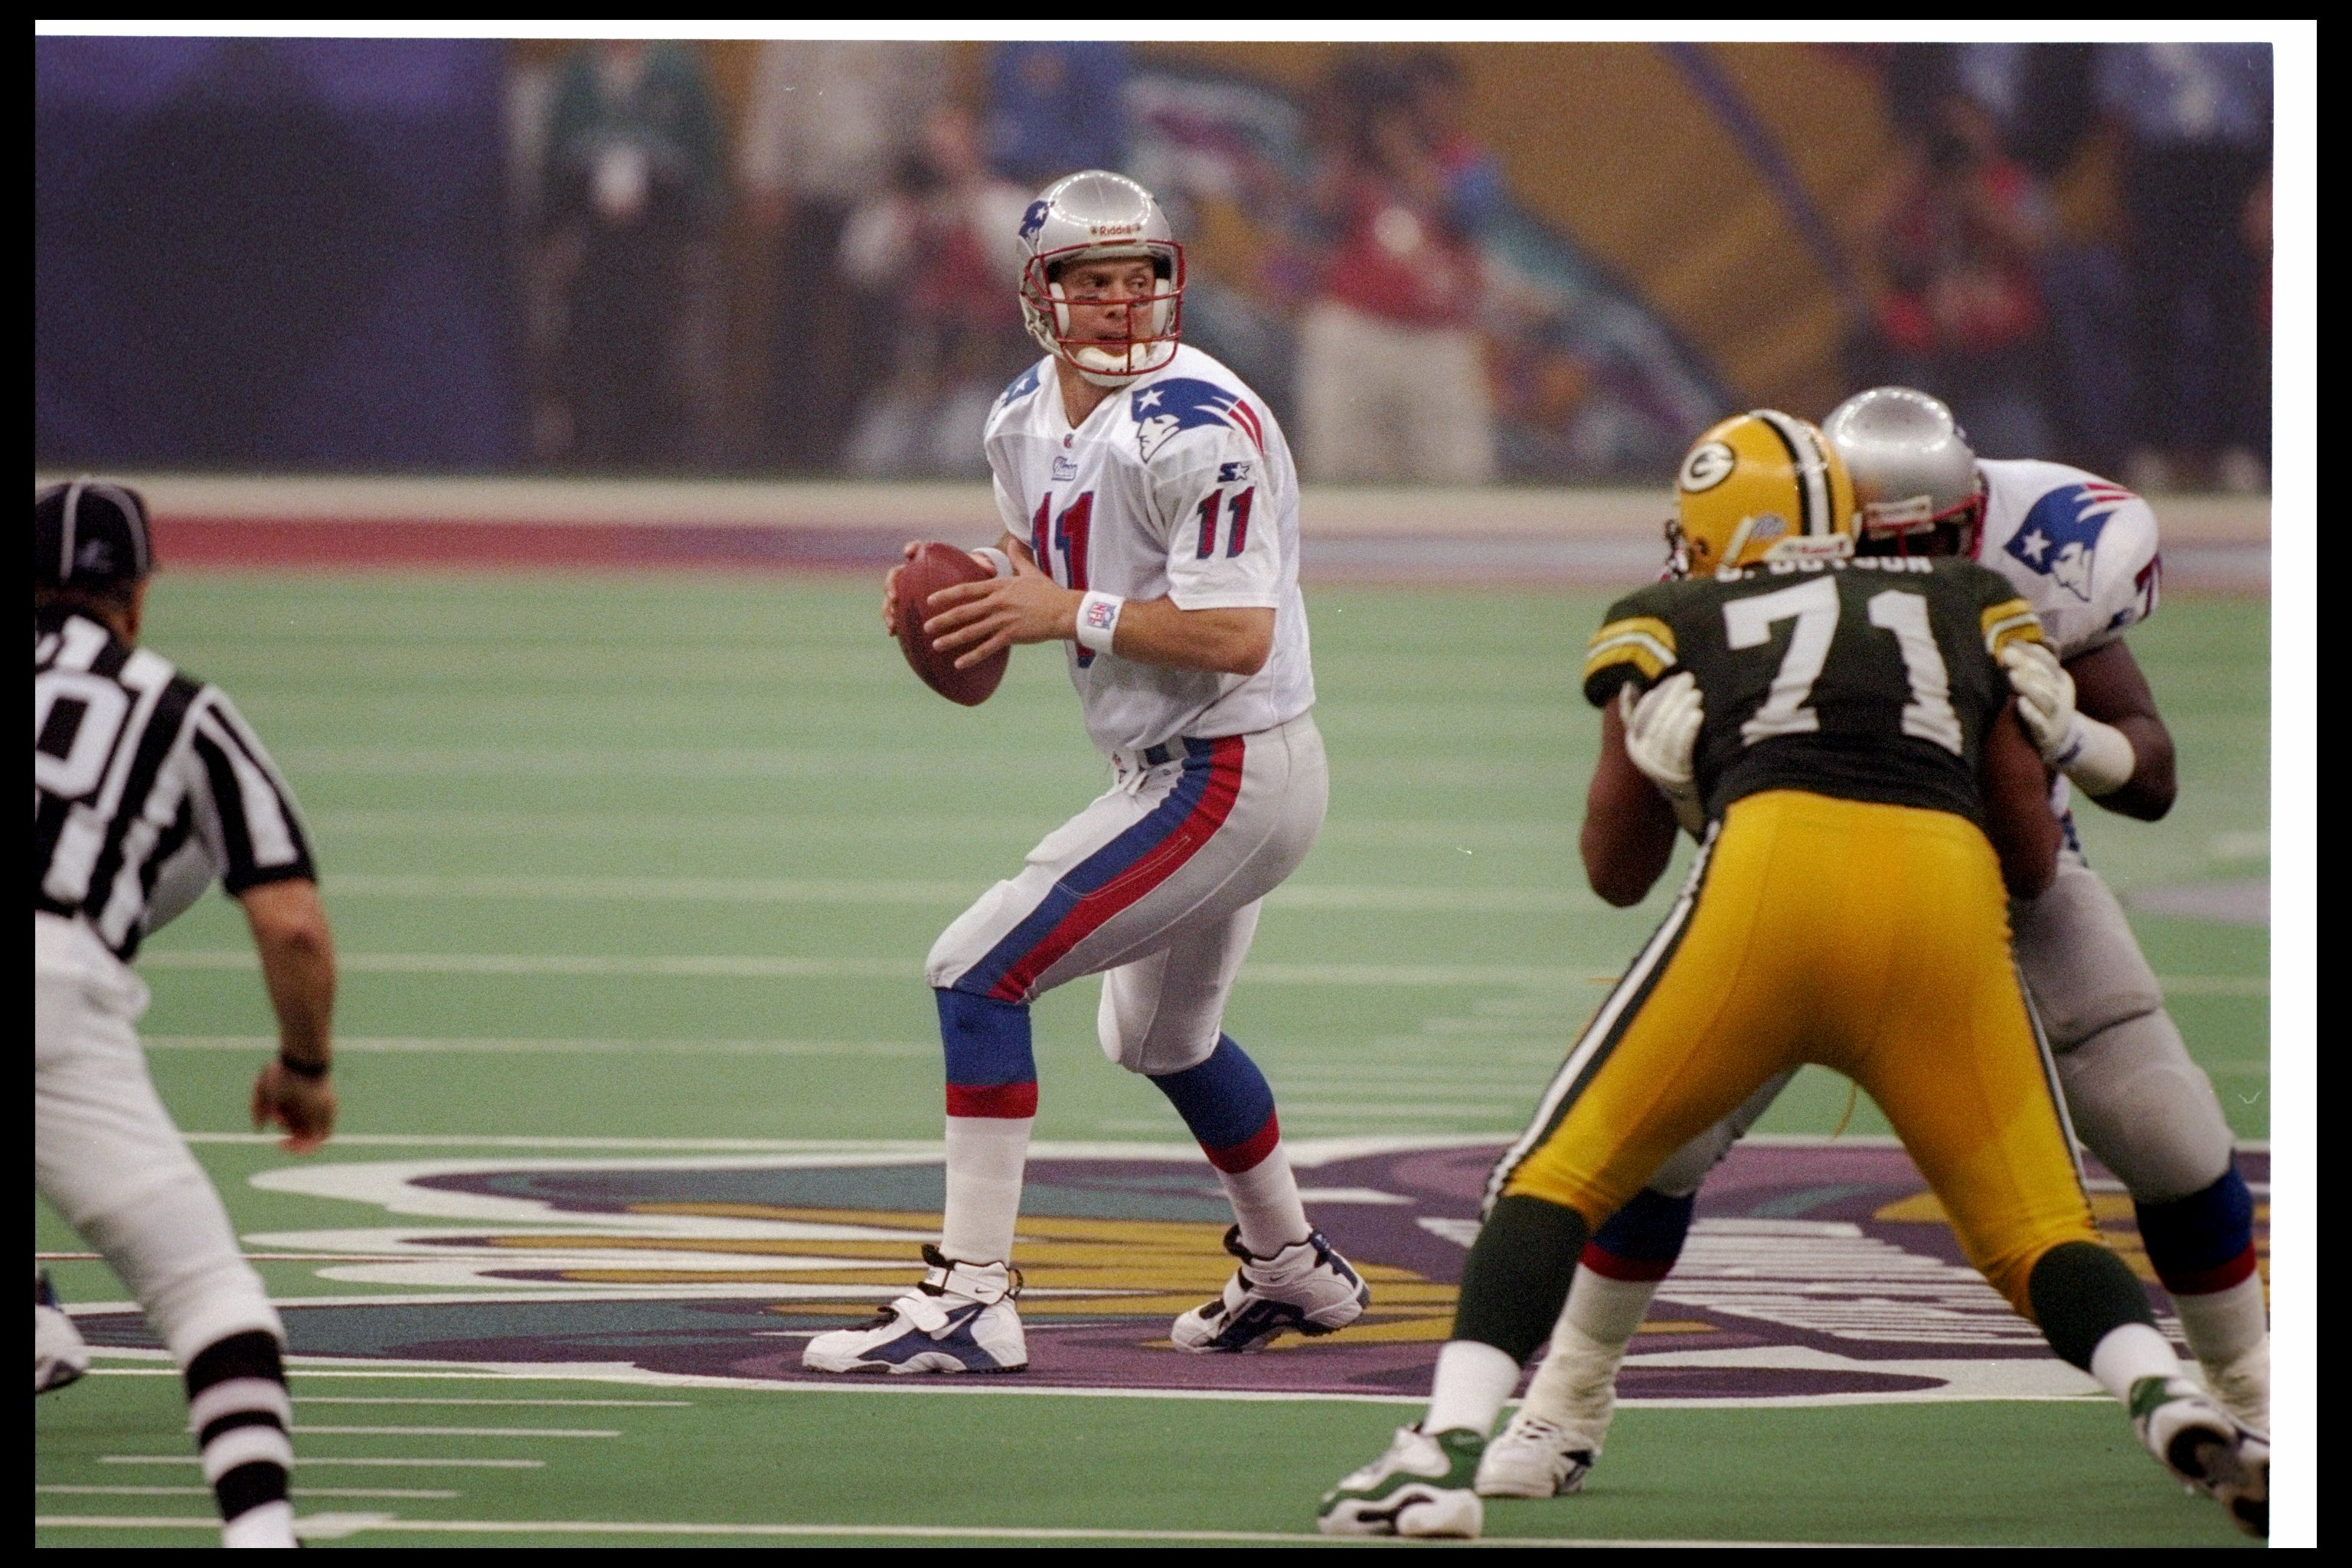 26 Jan 1997: Quarterback Drew Bledsoe of the New England Patriots looks to pass the ball during Super Bowl XXXI against the Green Bay Packers at the Superdome in New Orleans, Louisiana. The Packers won the game, 35-21.